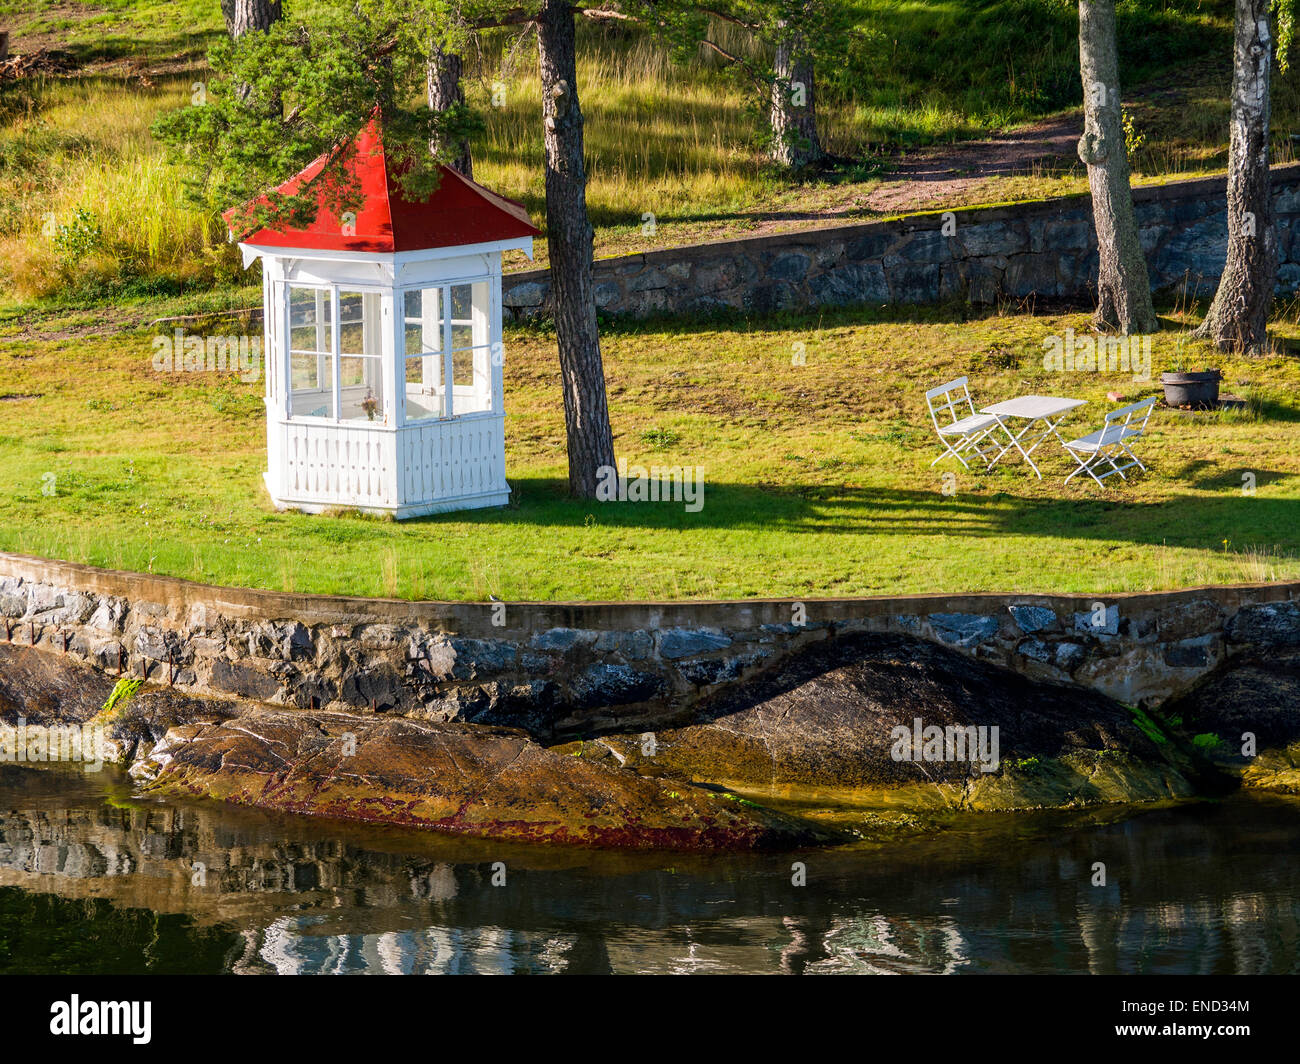 Garden house, table and chairs on a small island in the Stockholm archipelago of Sweden - Stock Image